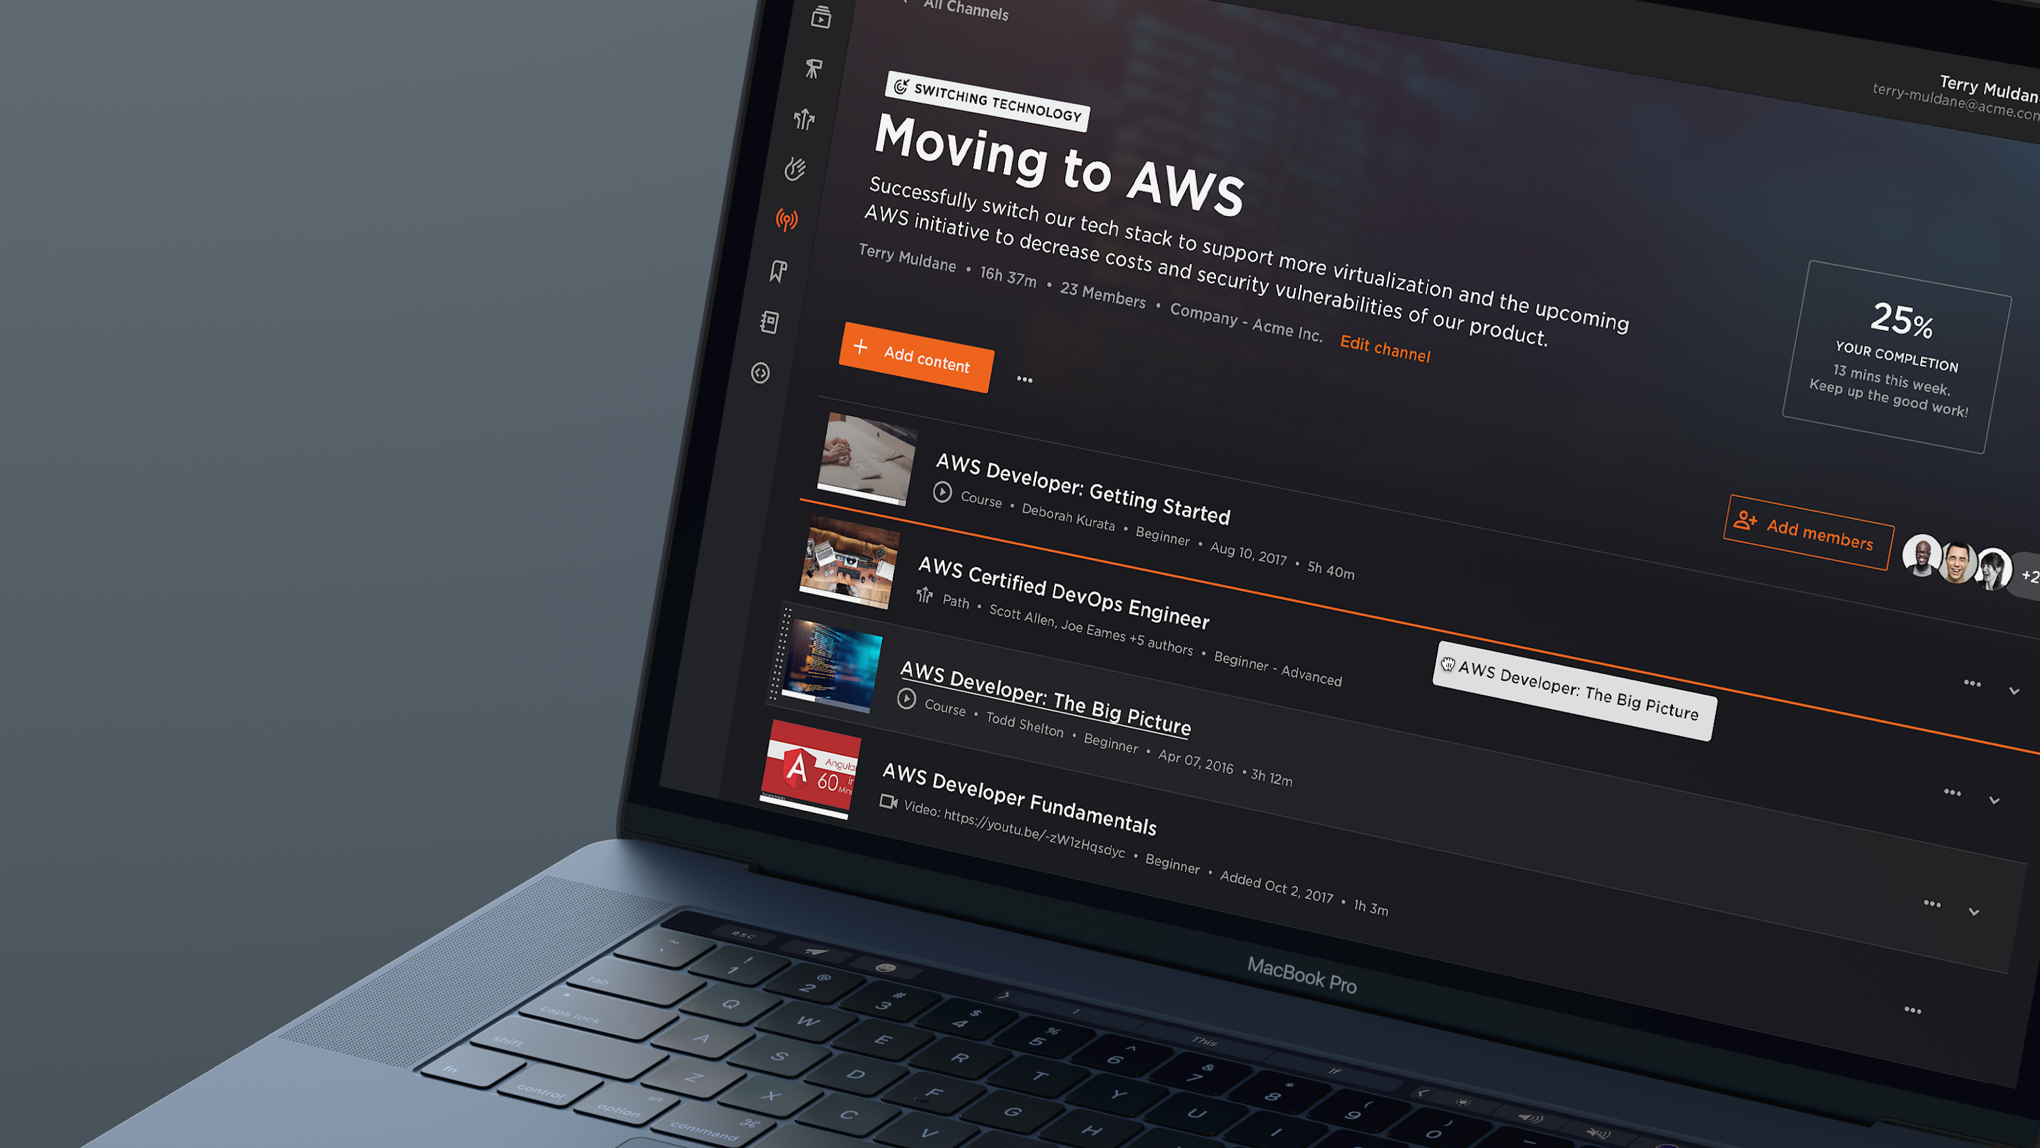 pluralsight-channels-banner.png